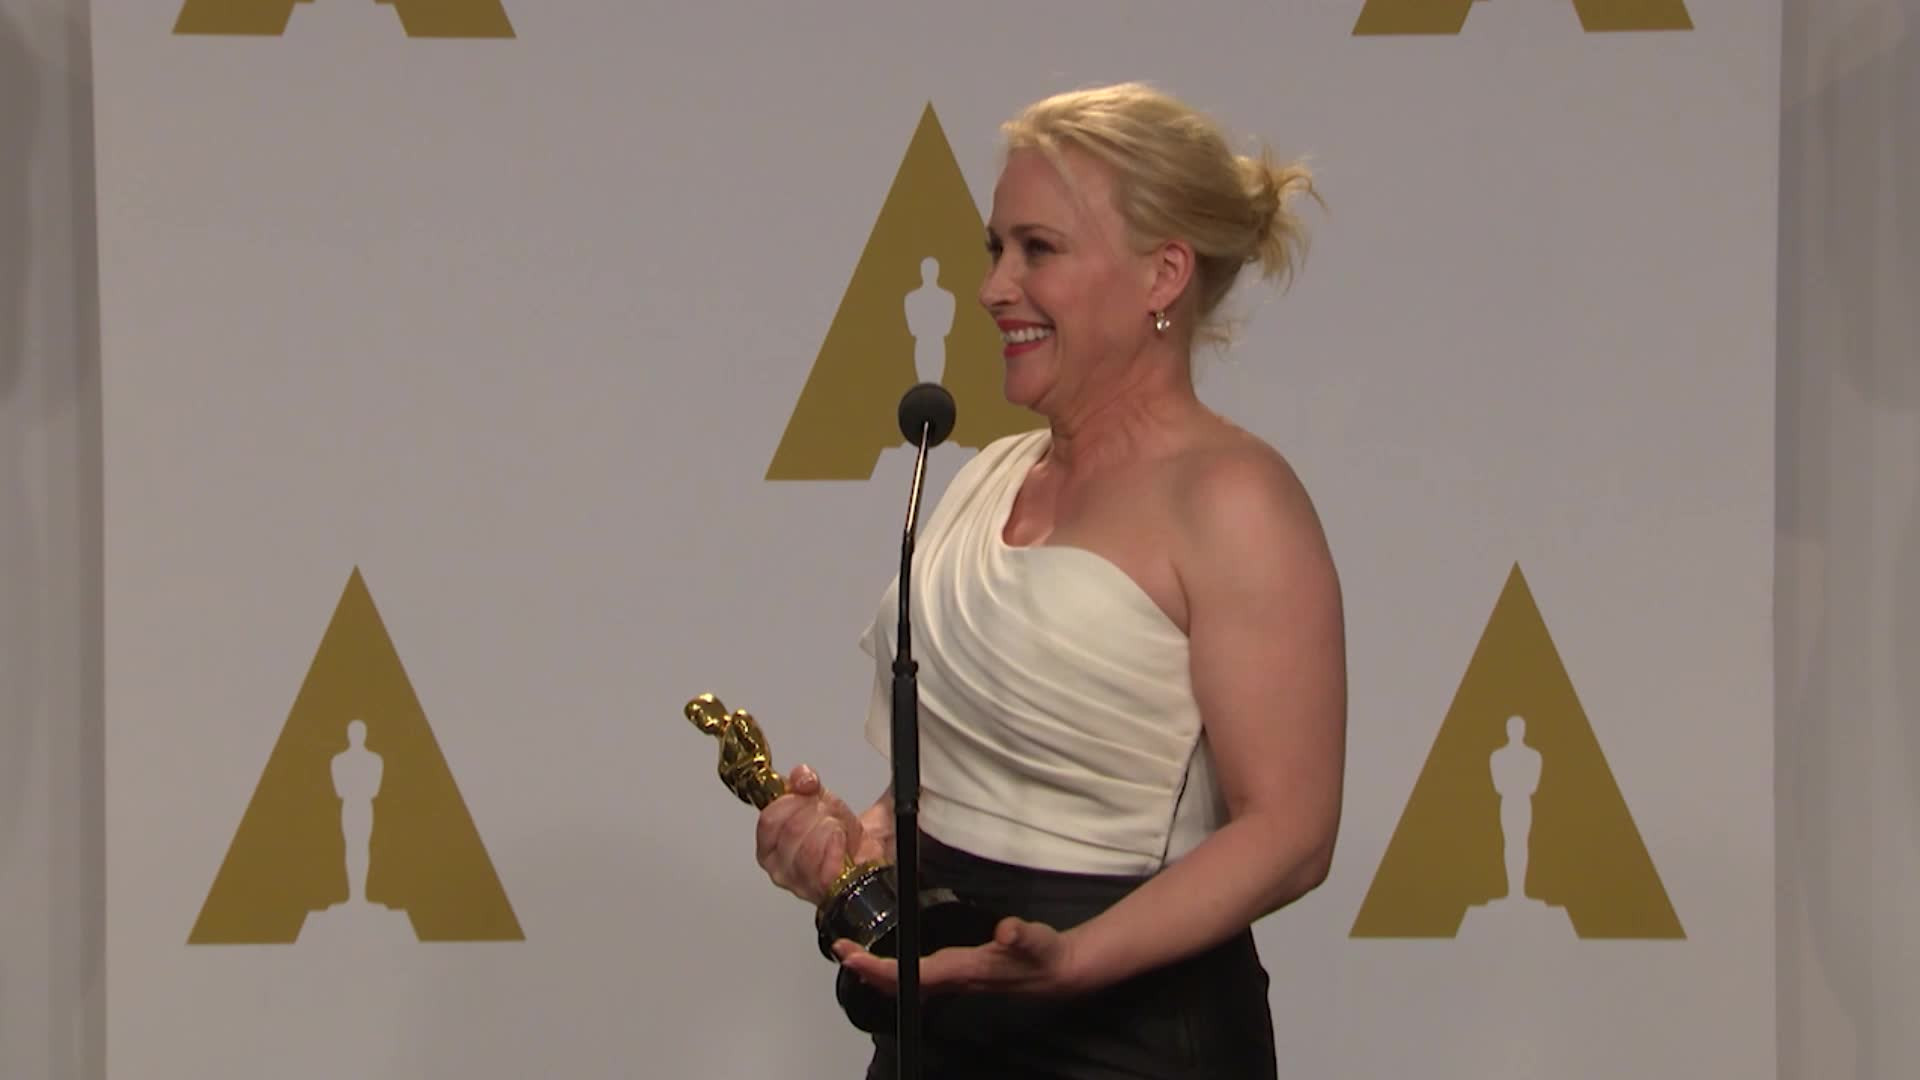 Patricia Arquette at the Oscars says Equal means equal